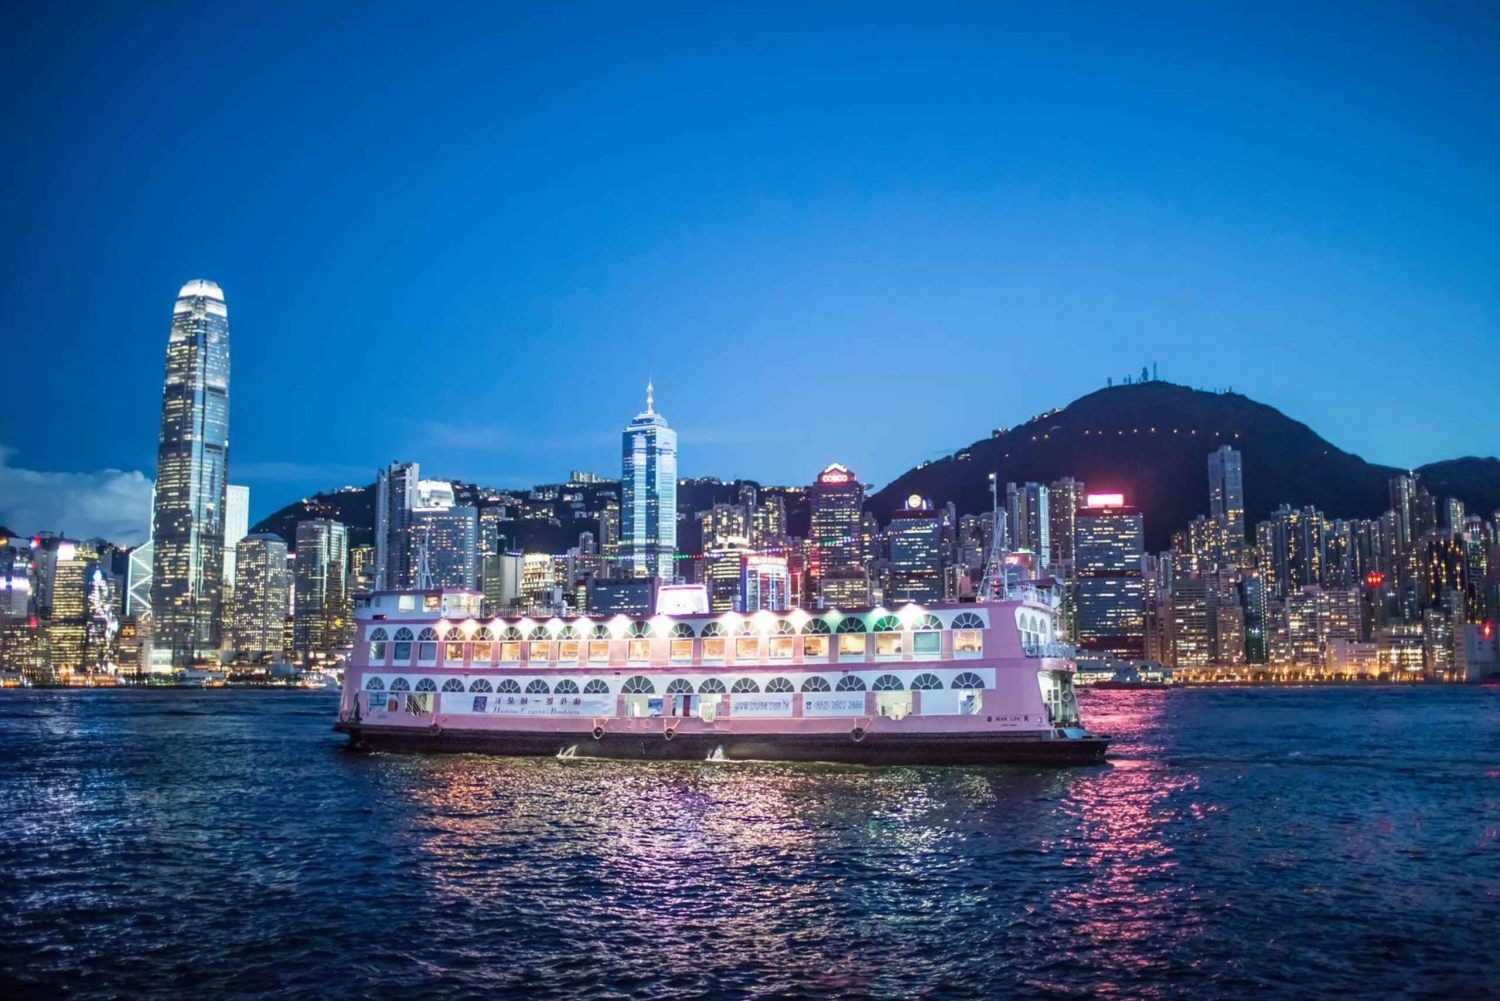 Night Dinner Cruise and Symphony of Lights